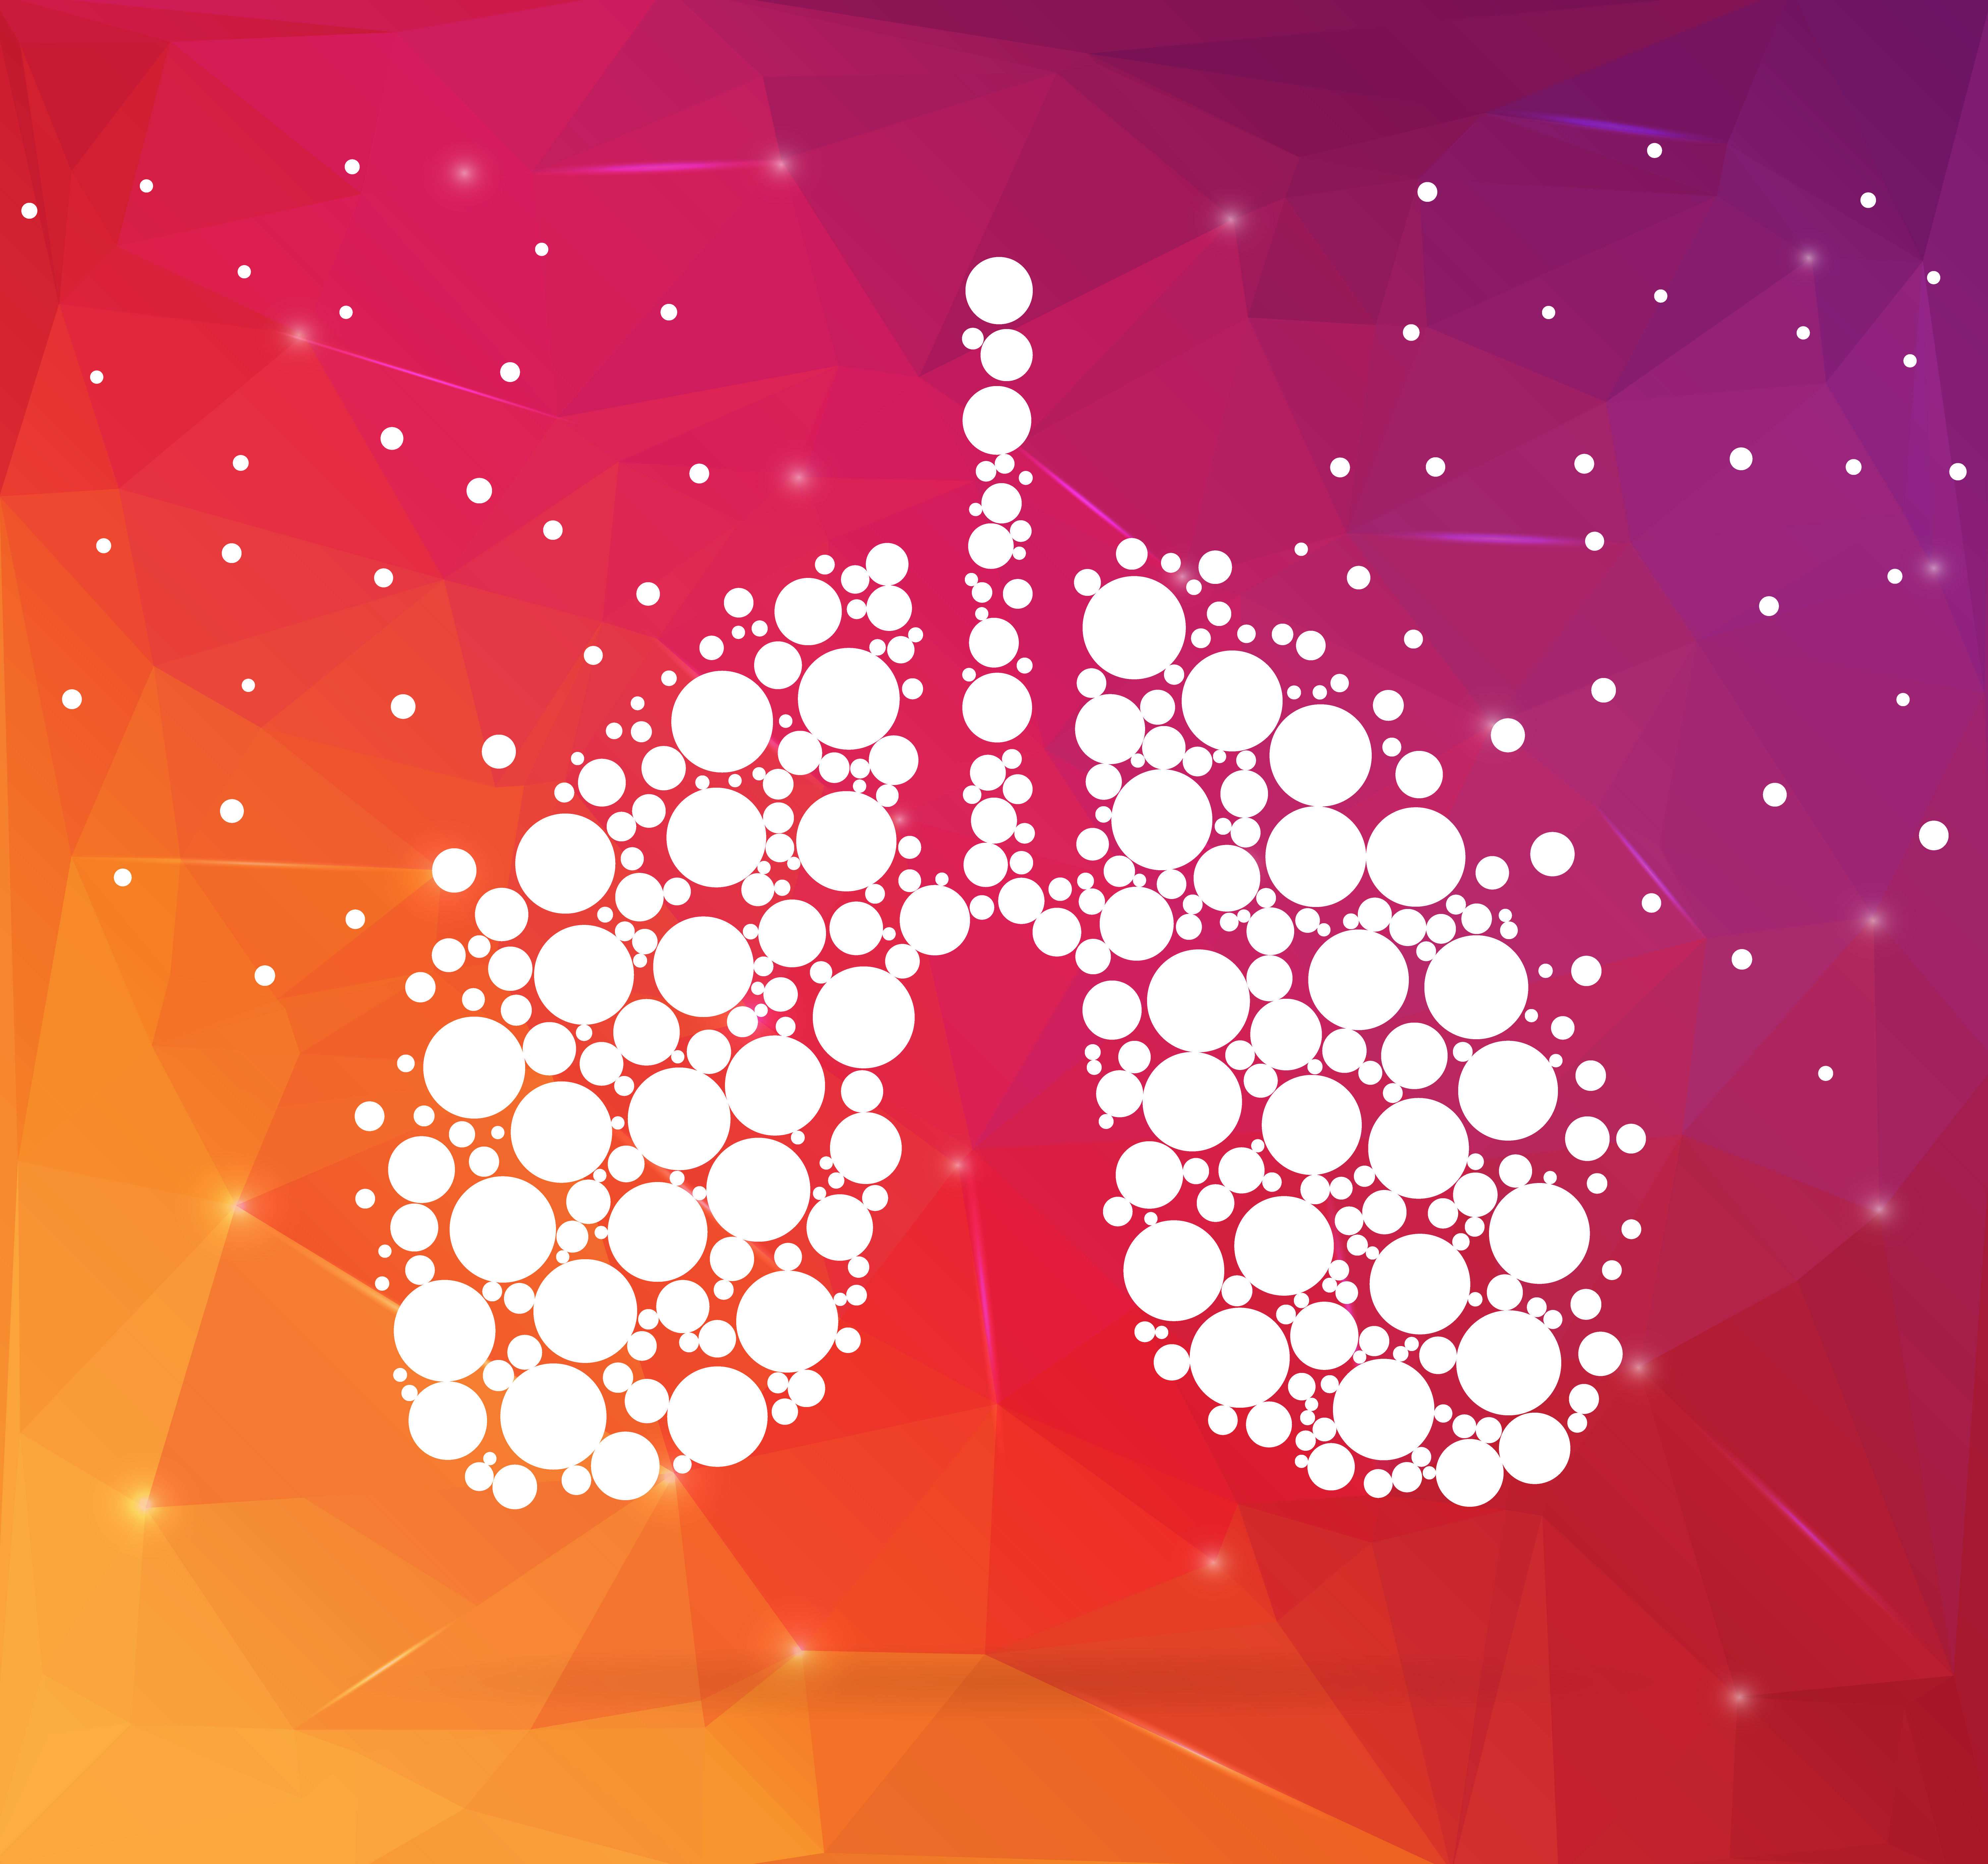 GSK, Theravance To File New Drug Application in Japan For Relvar Ellipta COPD Therapy